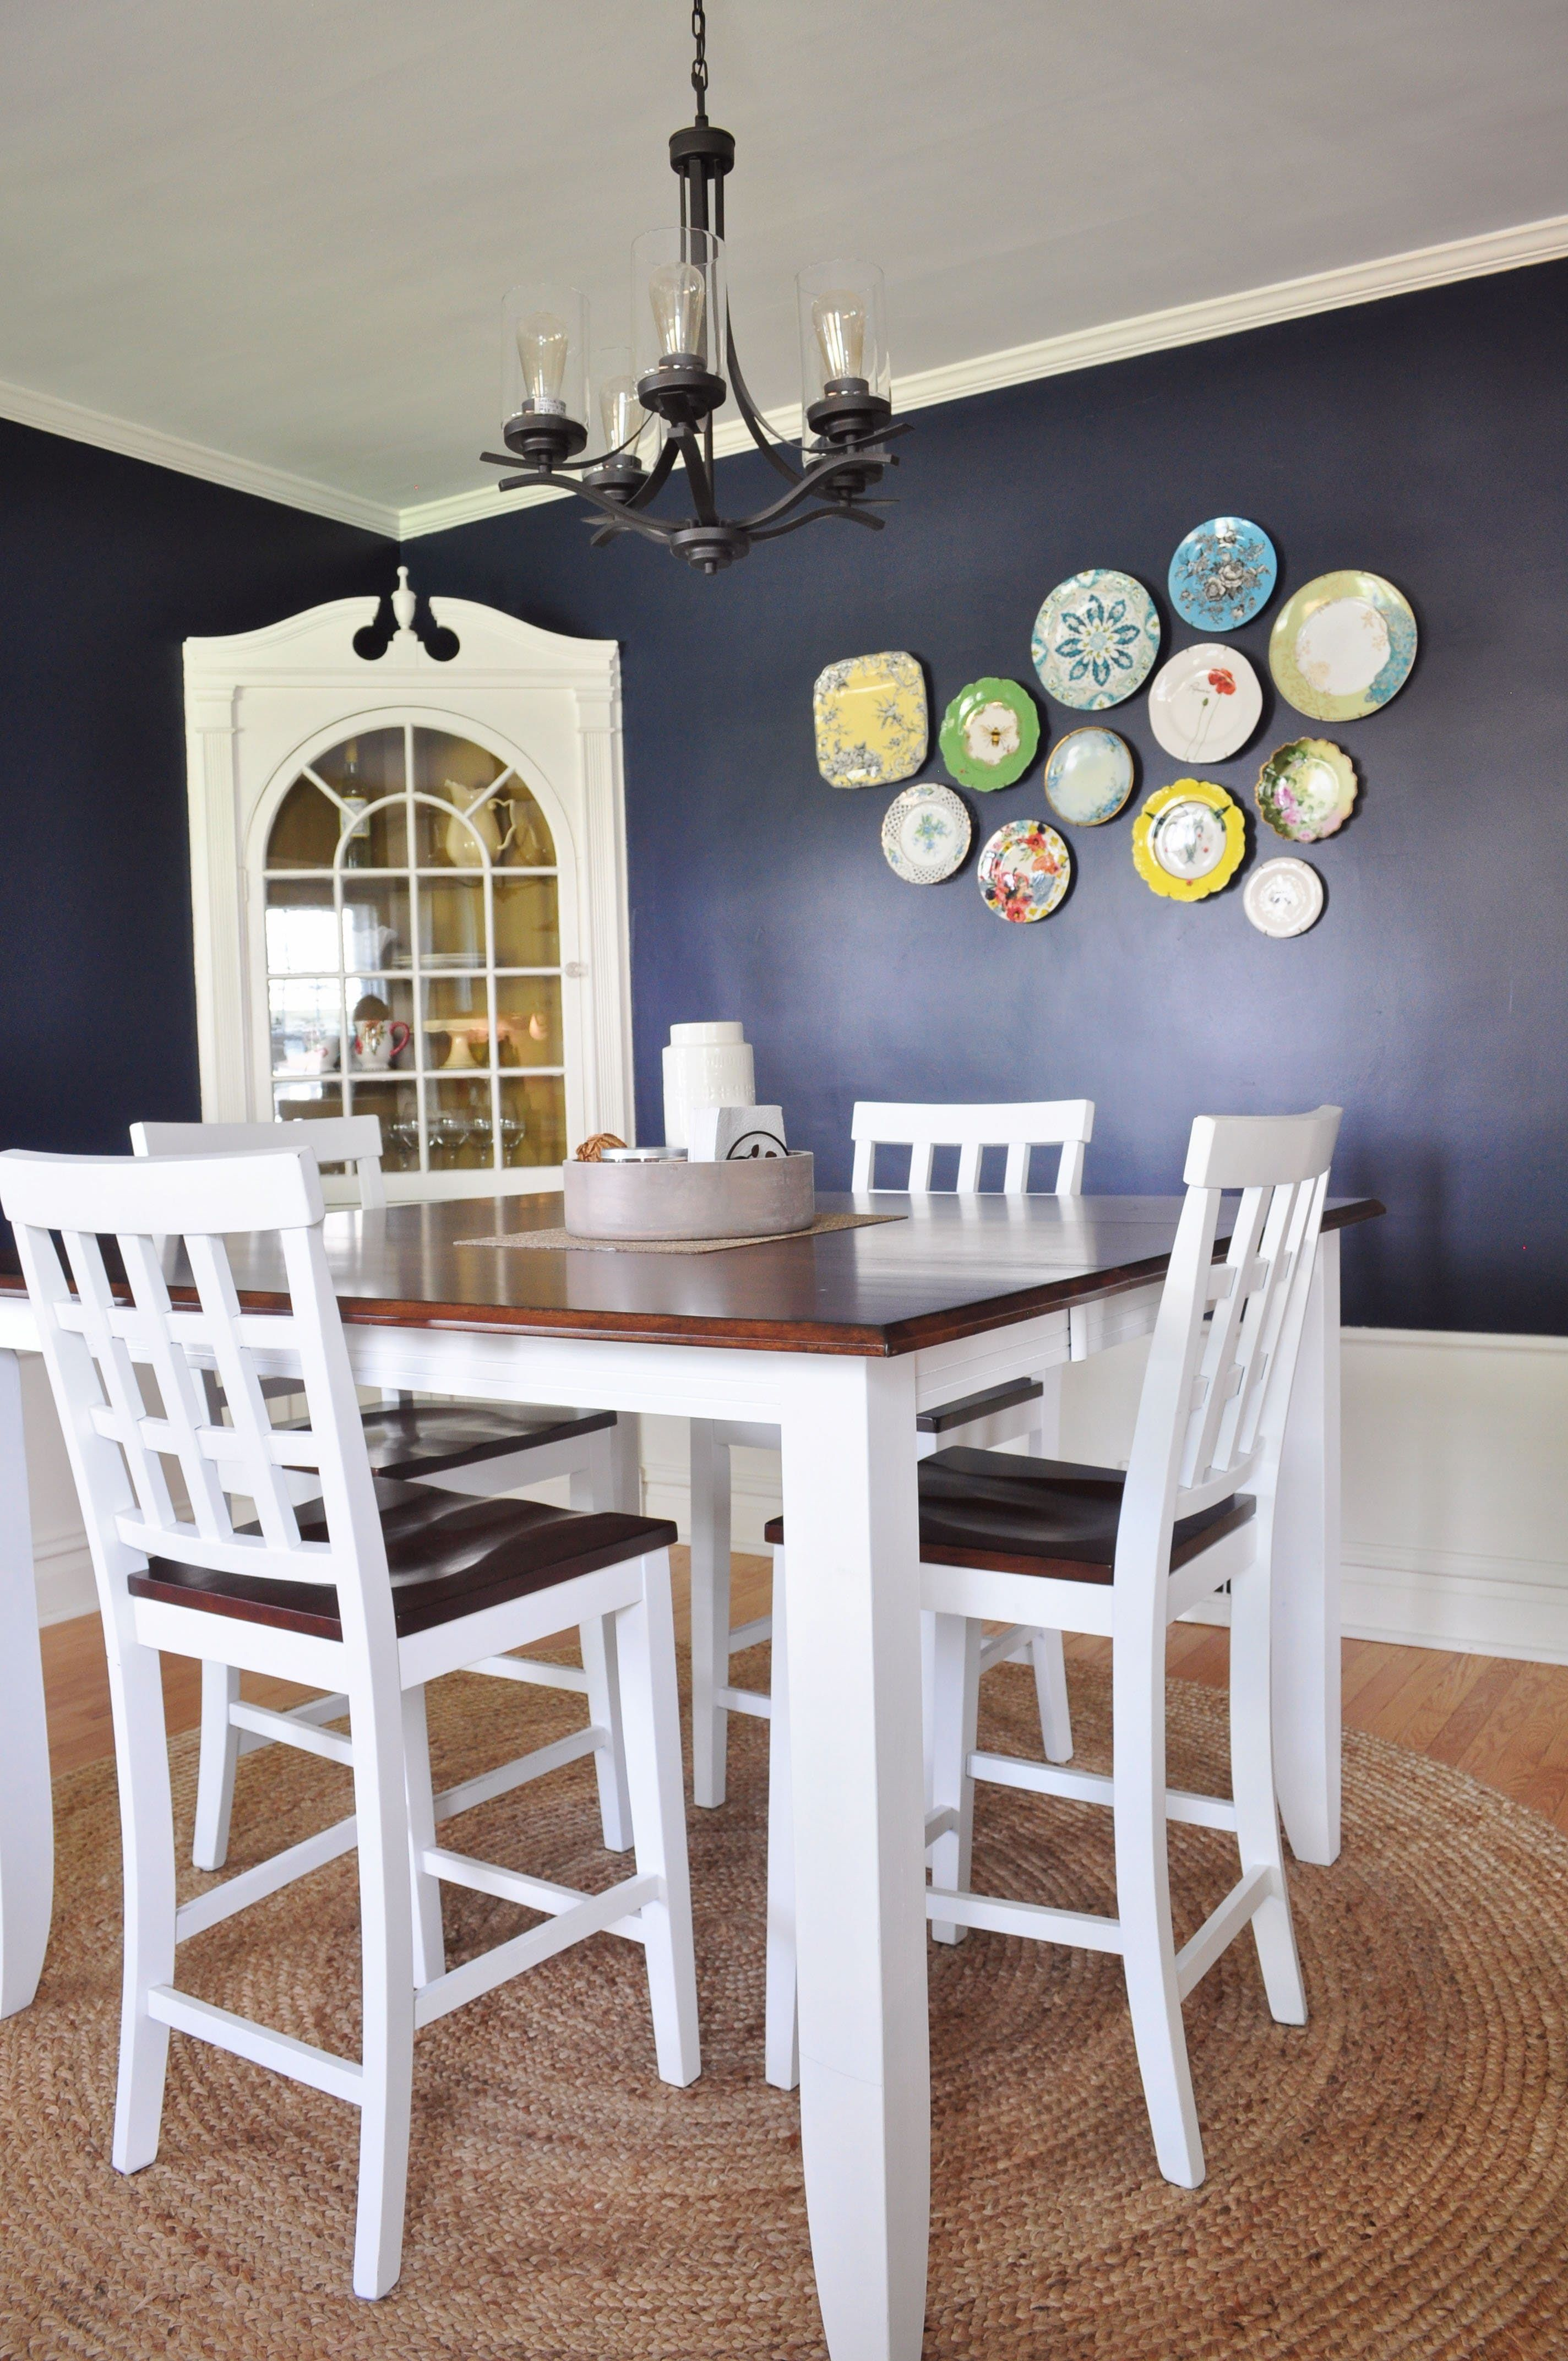 Beths NewMeetsOld Beach Cottage Inspired Bungalow White dining